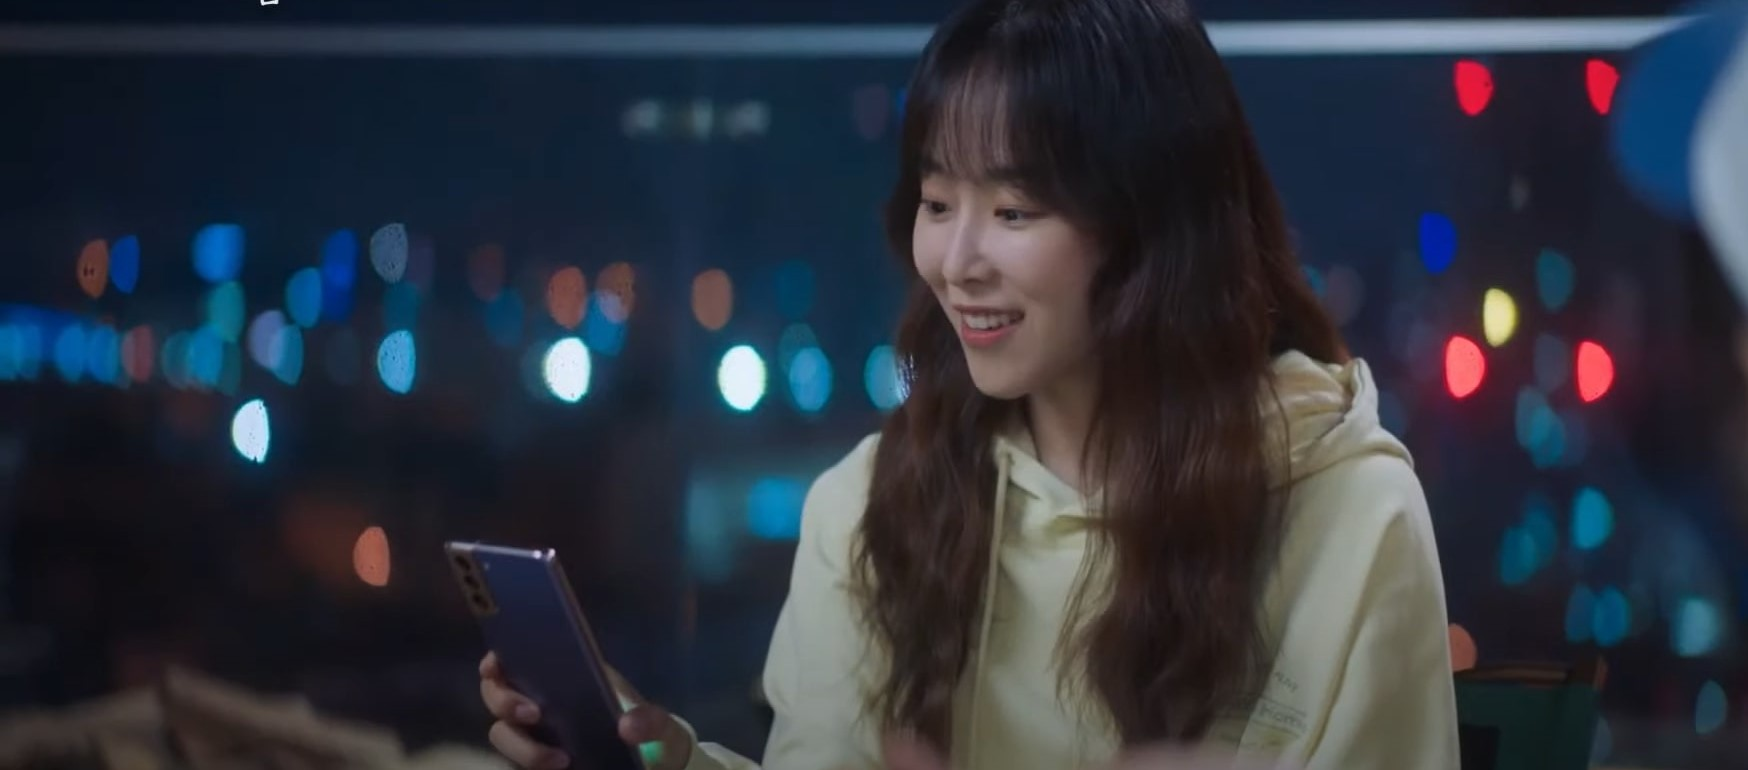 You Are My Spring Episode 15 Release Date, Time, Recap, And Spoilers